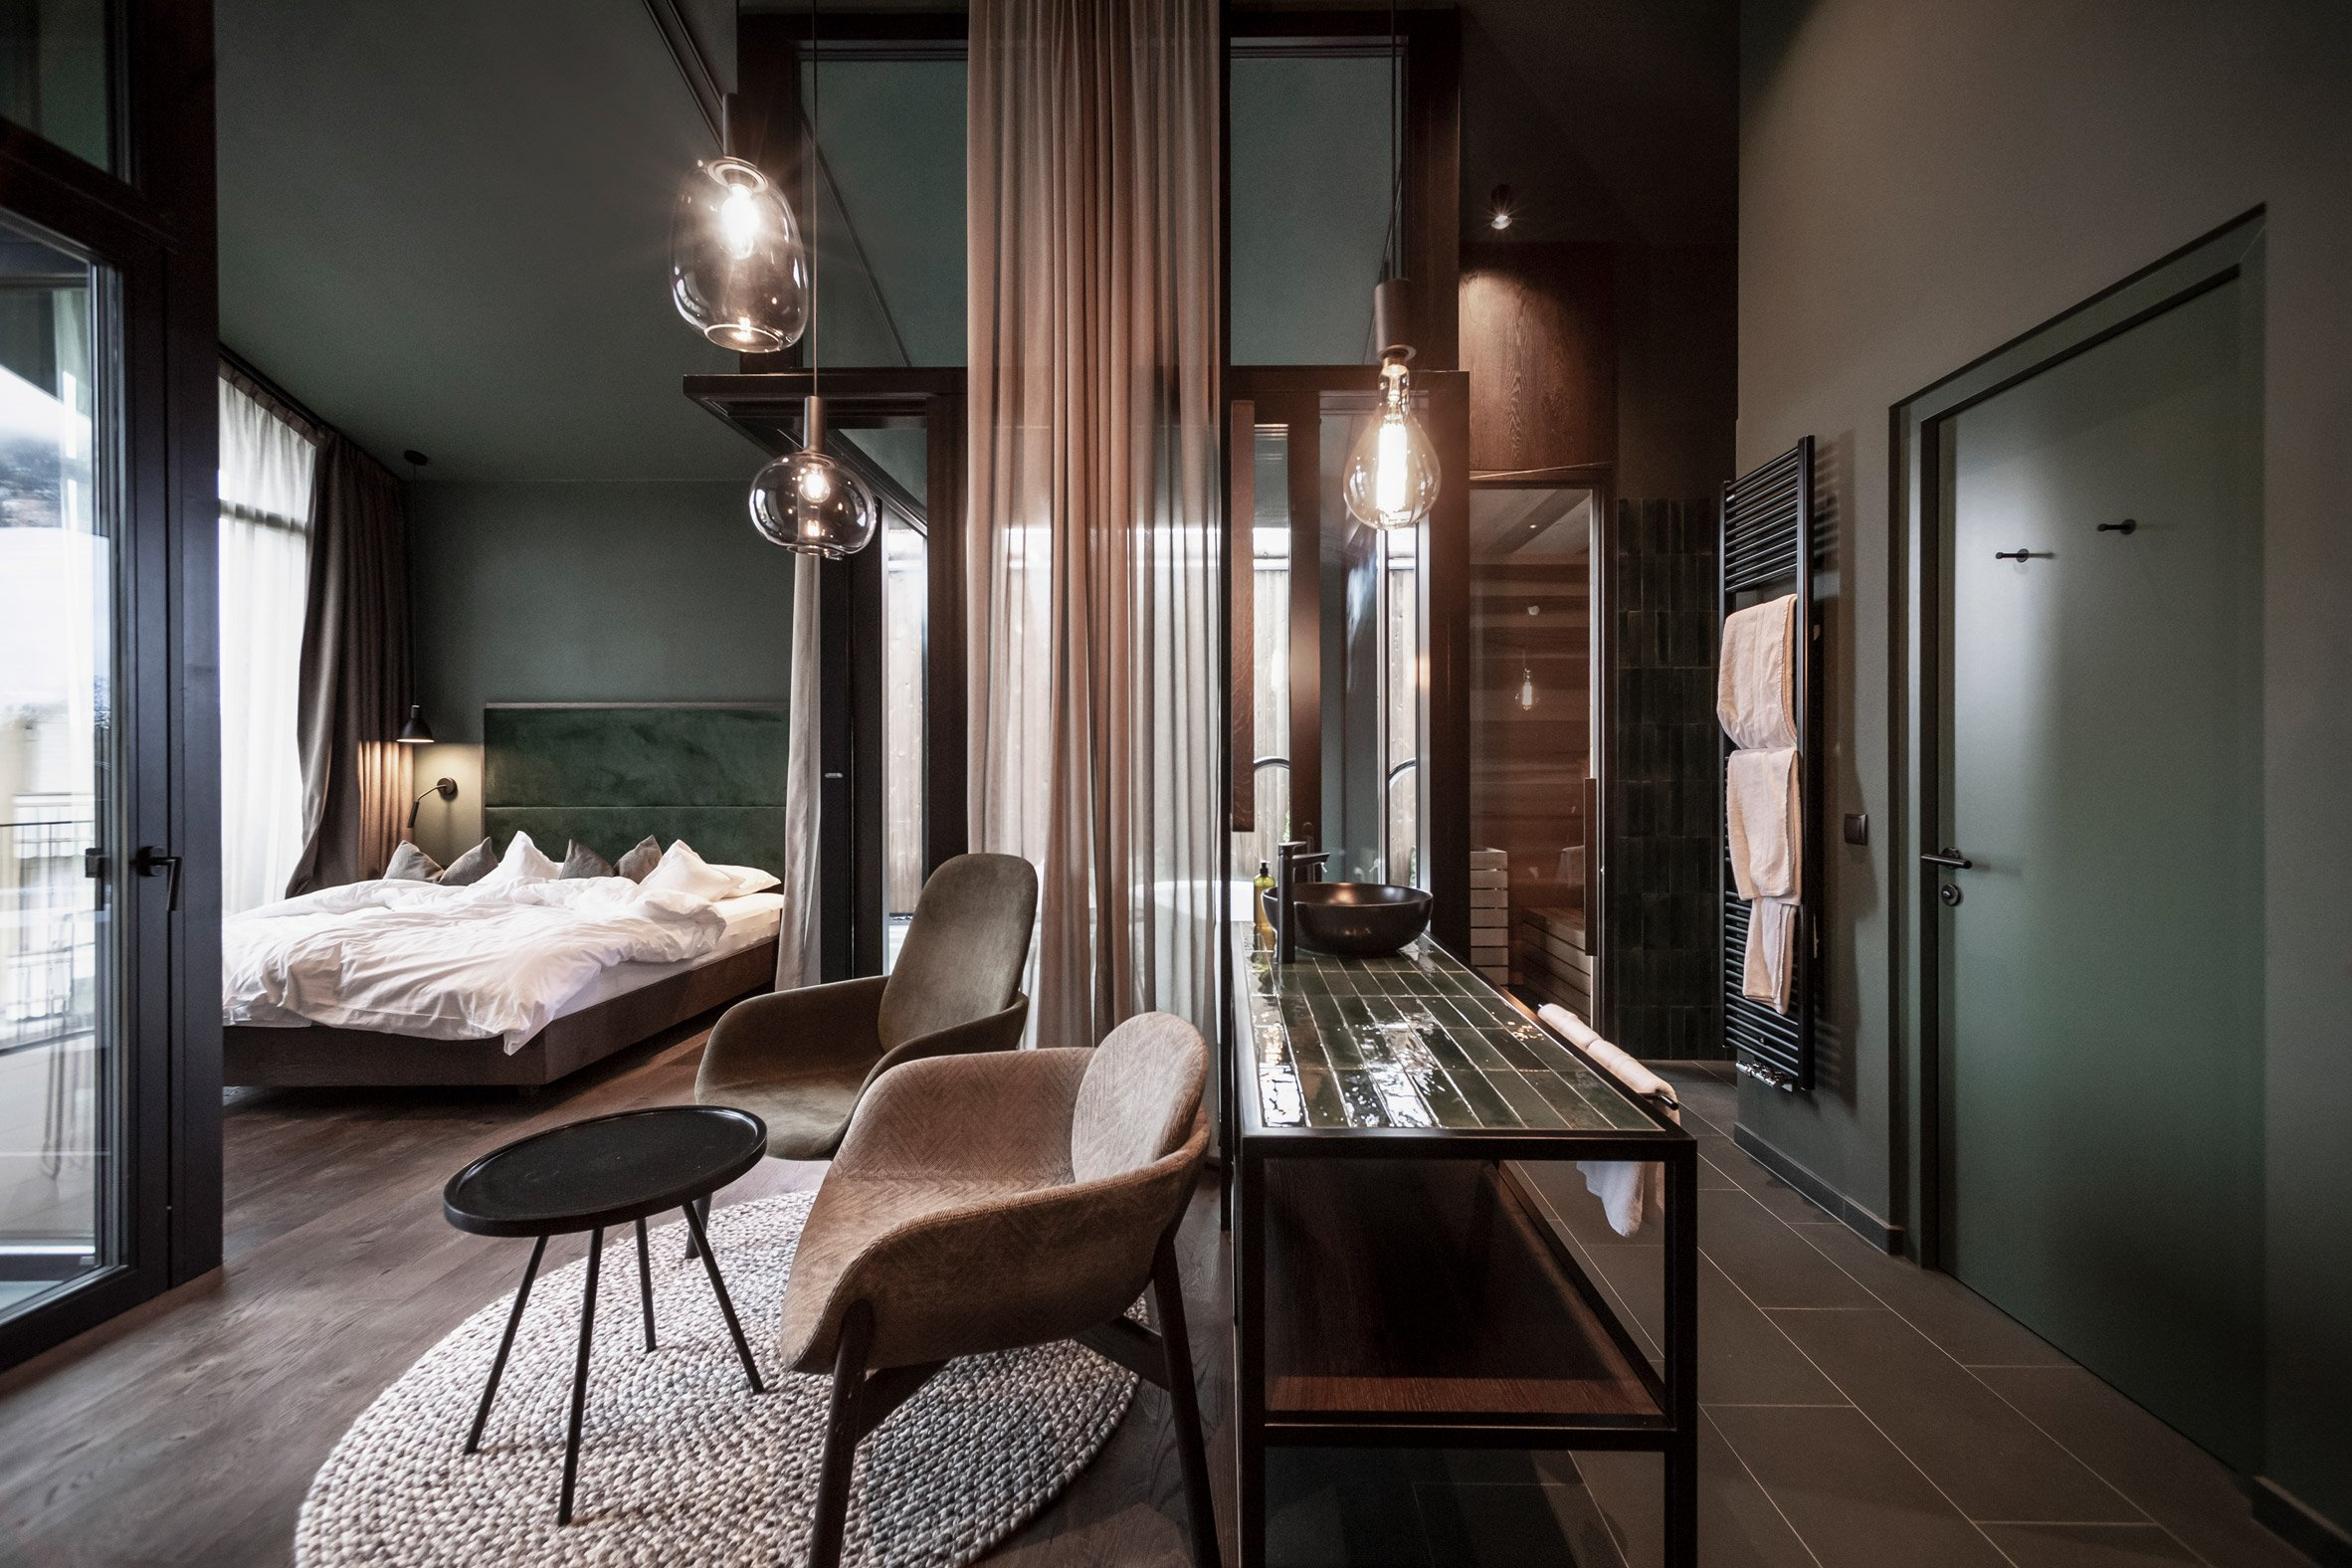 A private suite in the Floris hotel extension by NOA